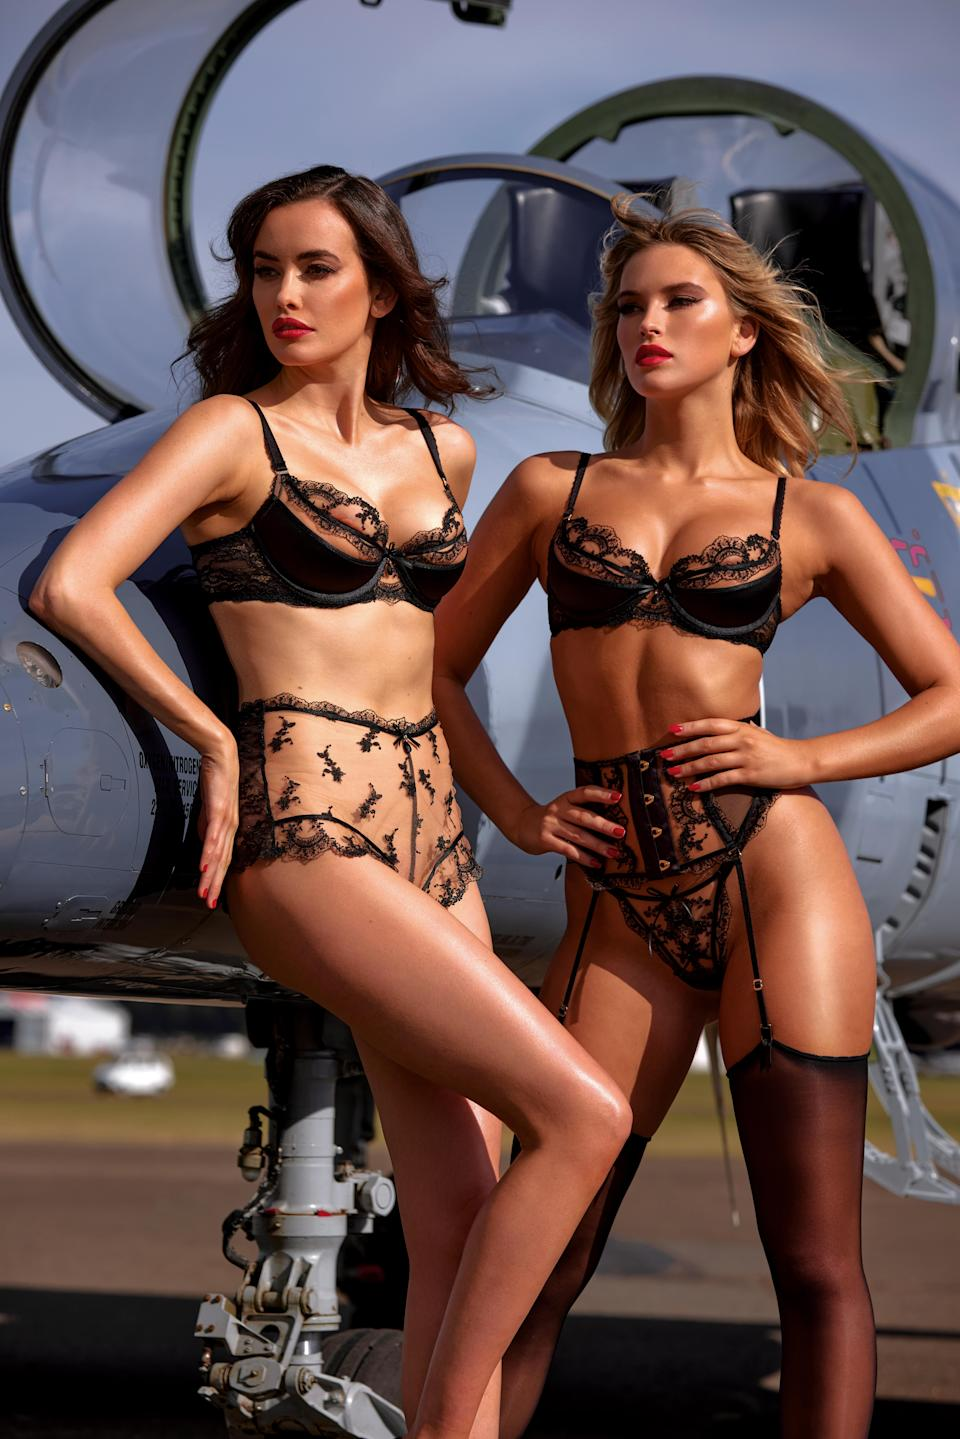 Australian lingerie brand Honey Birdette, which will soon be acquired by Playboy, plans to expand into loungewear and swimwear. - Credit: Courtesy Photo